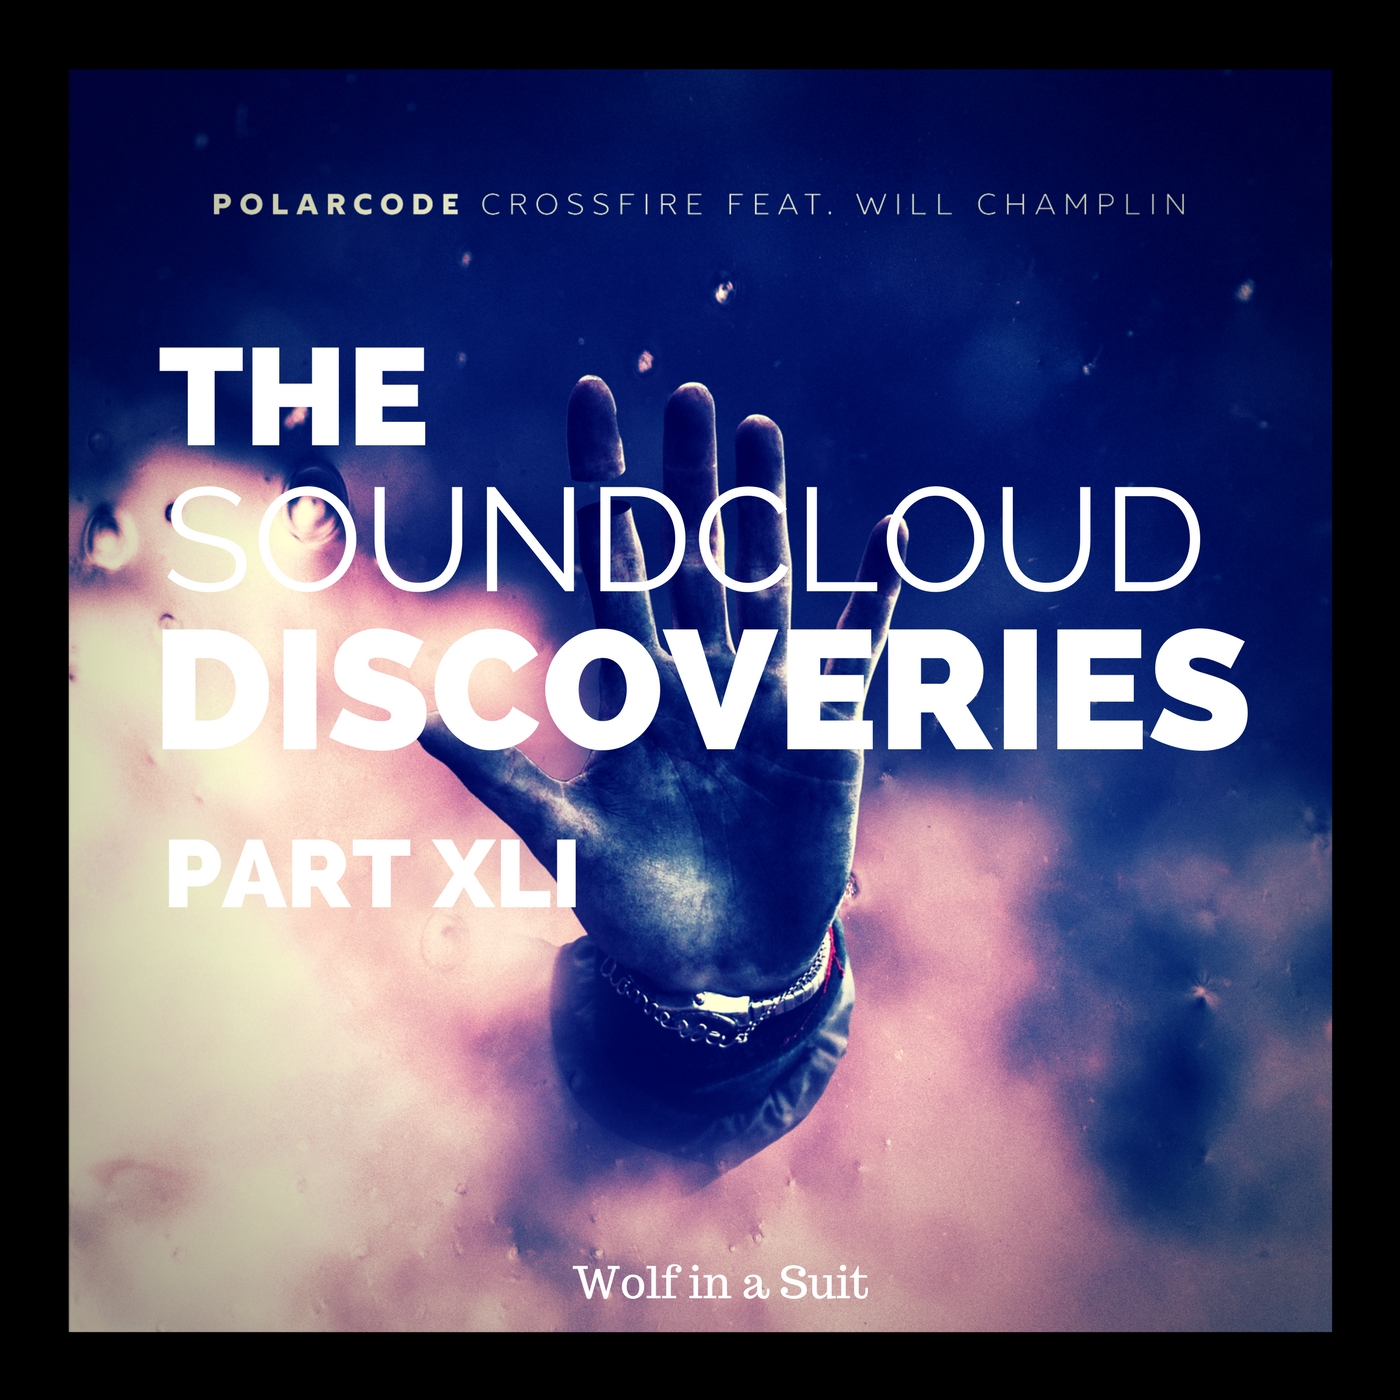 playlist-Soundcloud Discoveries Part XLI-indie music-indie rock-indie pop-indie folk-new music-music blog-indie blog-wolfinasuit-wolf in a suit